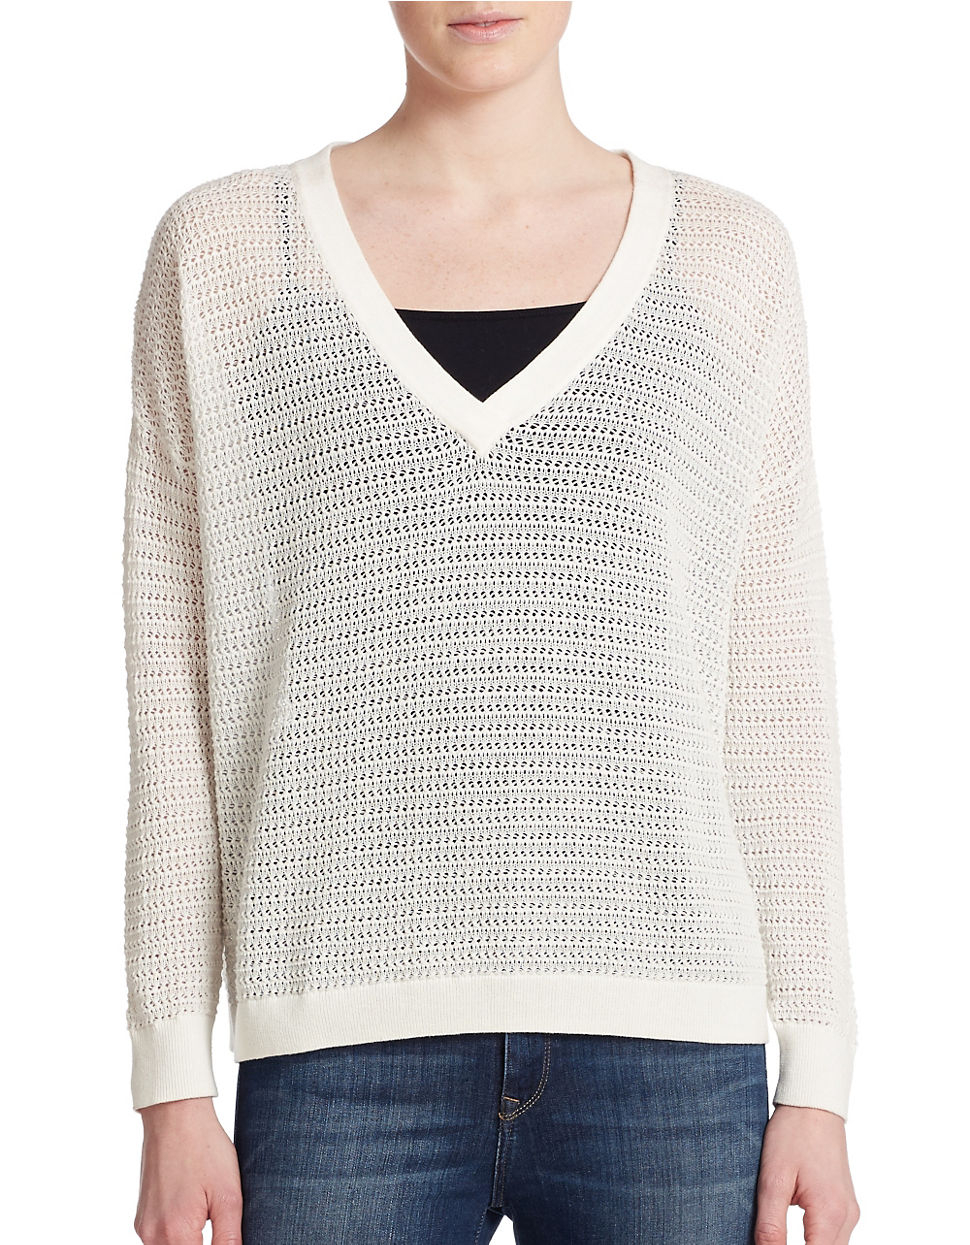 Lyst French Connection Open Weave V Neck Sweater In White